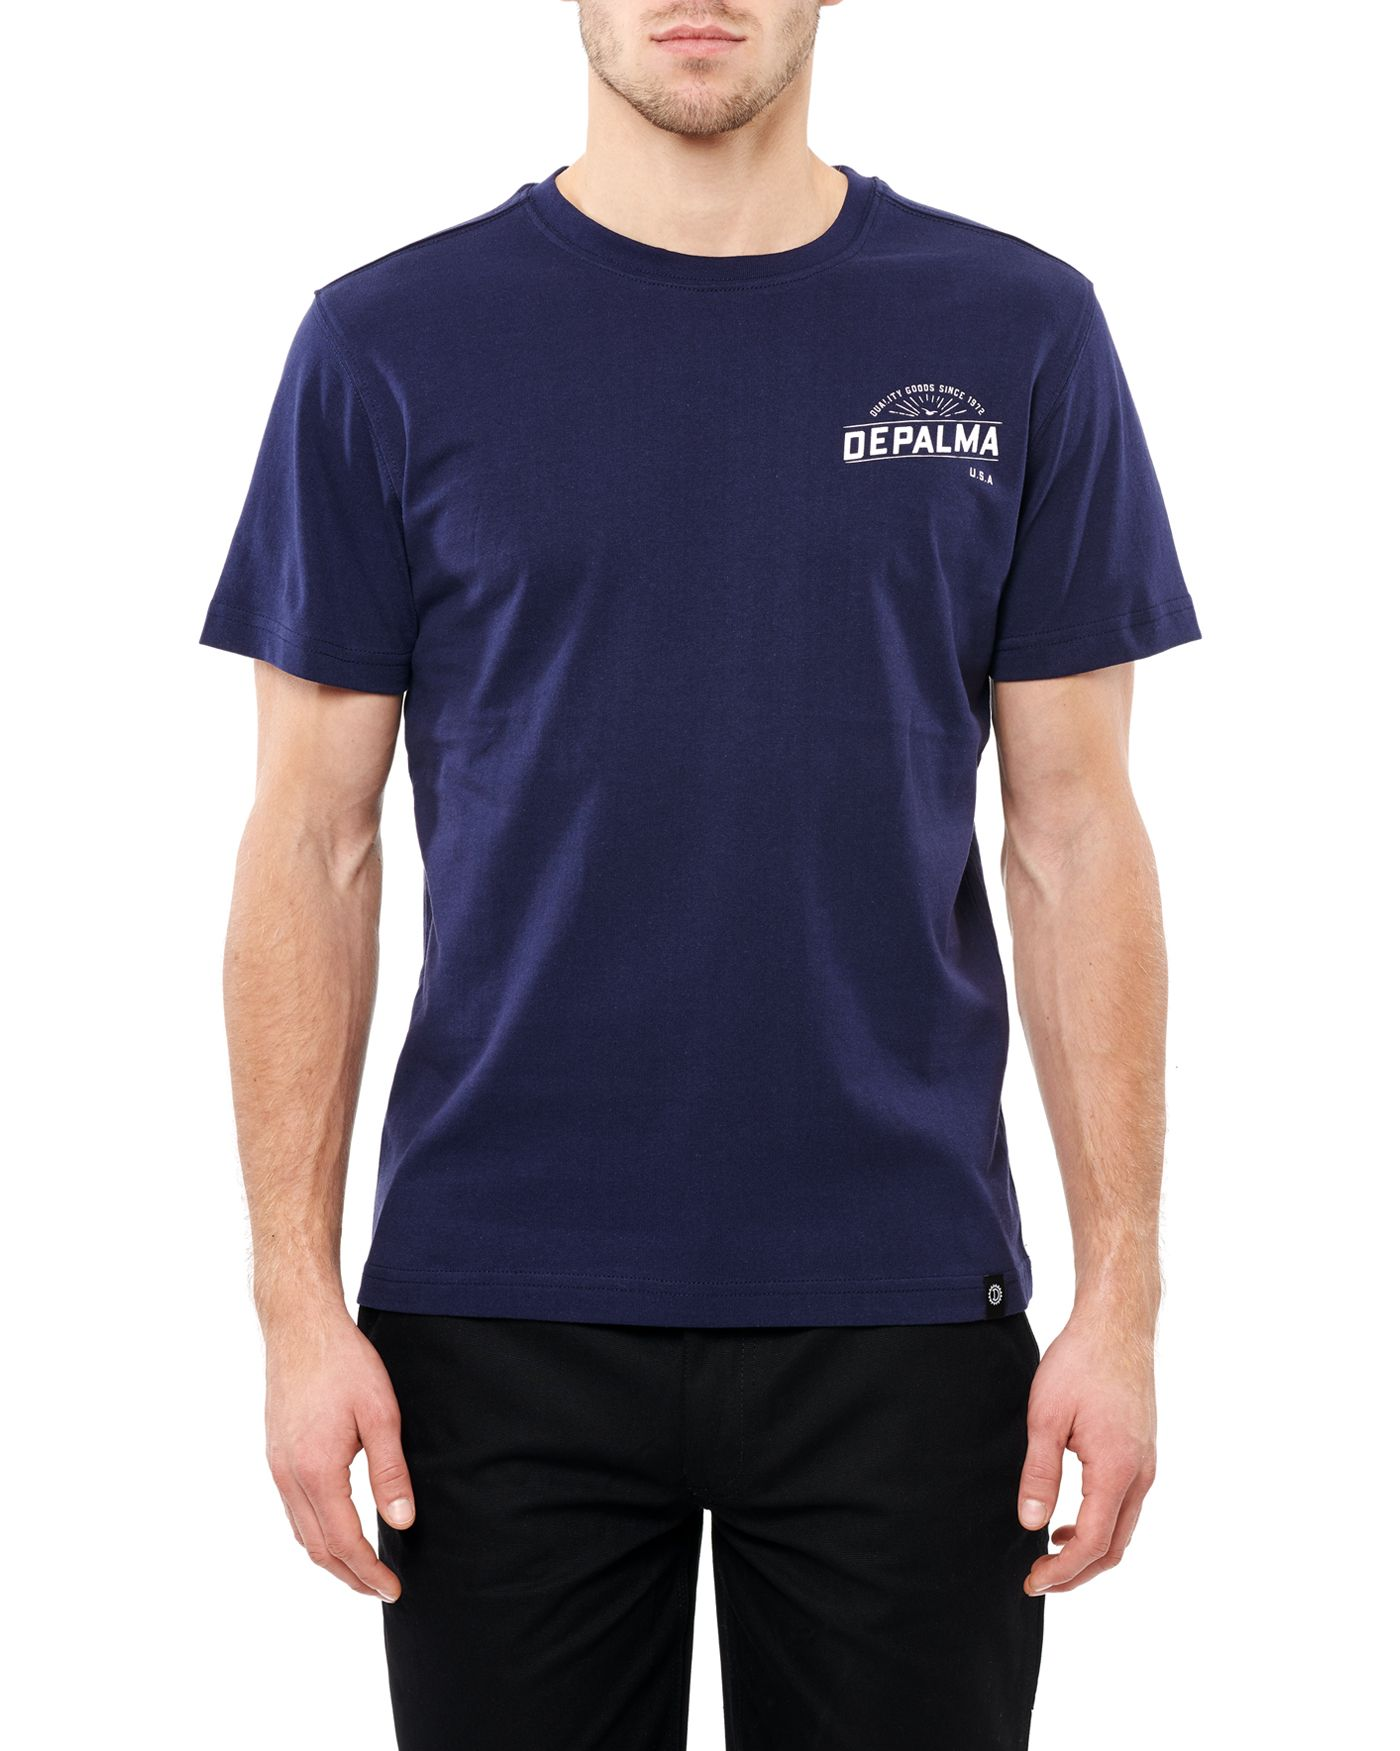 Photo of Bison S/S T-shirt, Navy